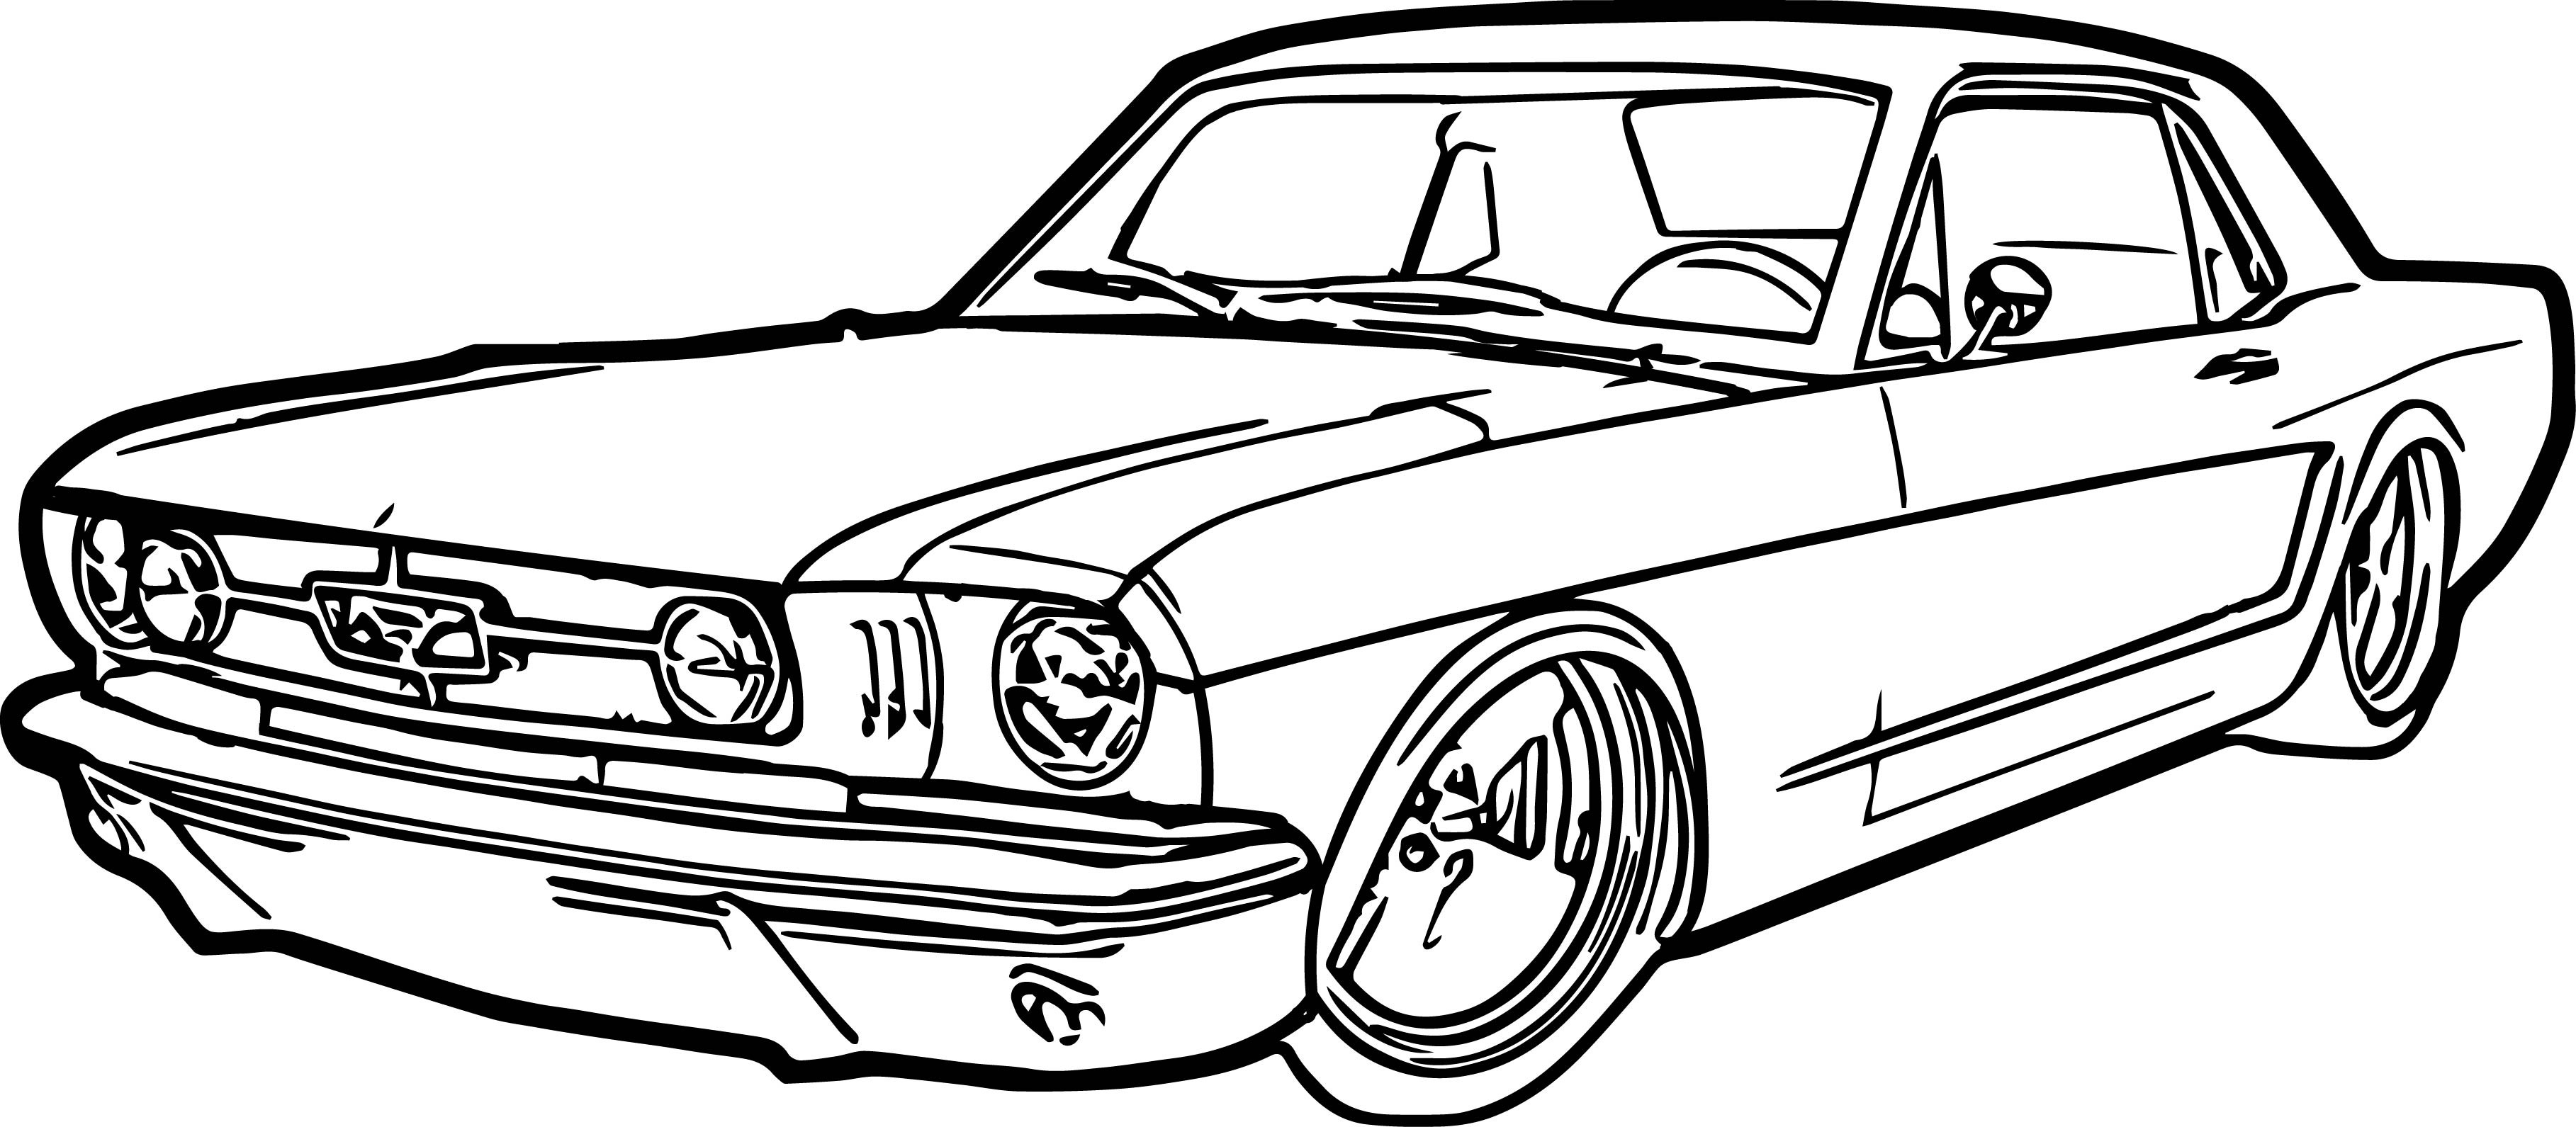 3635x1591 Antique Car Coloring Pages Beautiful Car Coloring Pages Simple Car